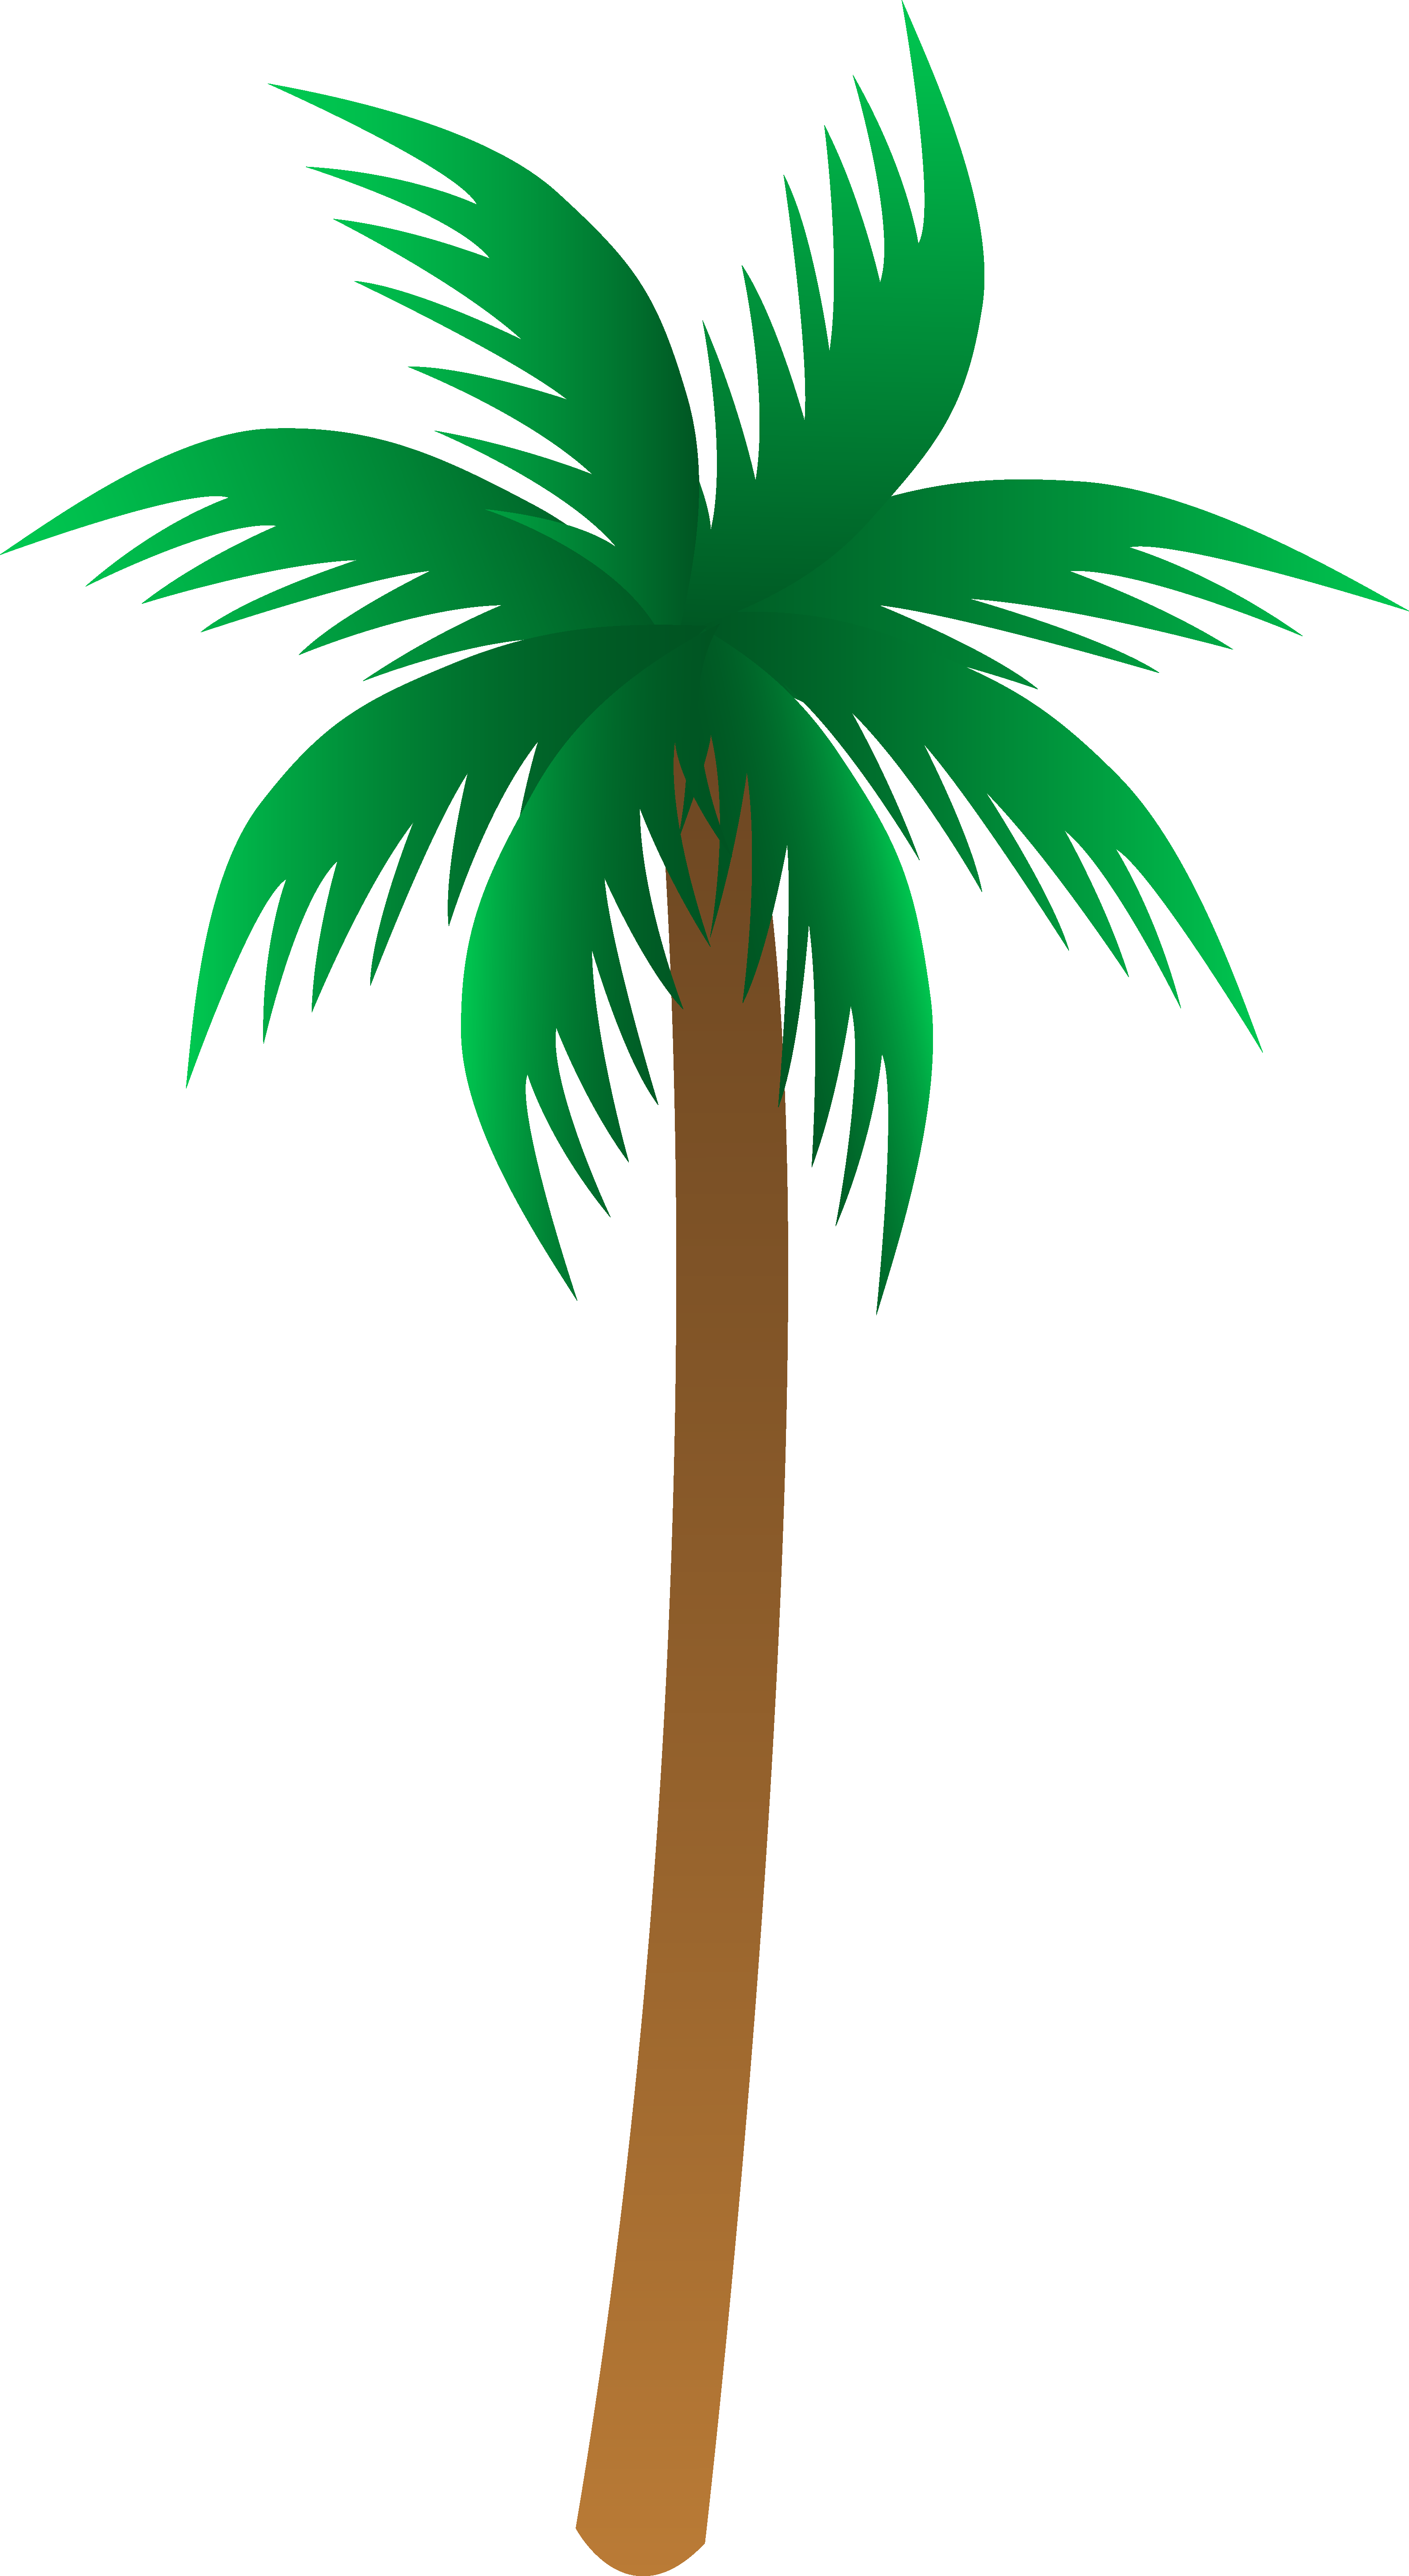 Beach tree clipart jpg royalty free stock Clip Art Palm Tree & Clip Art Palm Tree Clip Art Images ... jpg royalty free stock